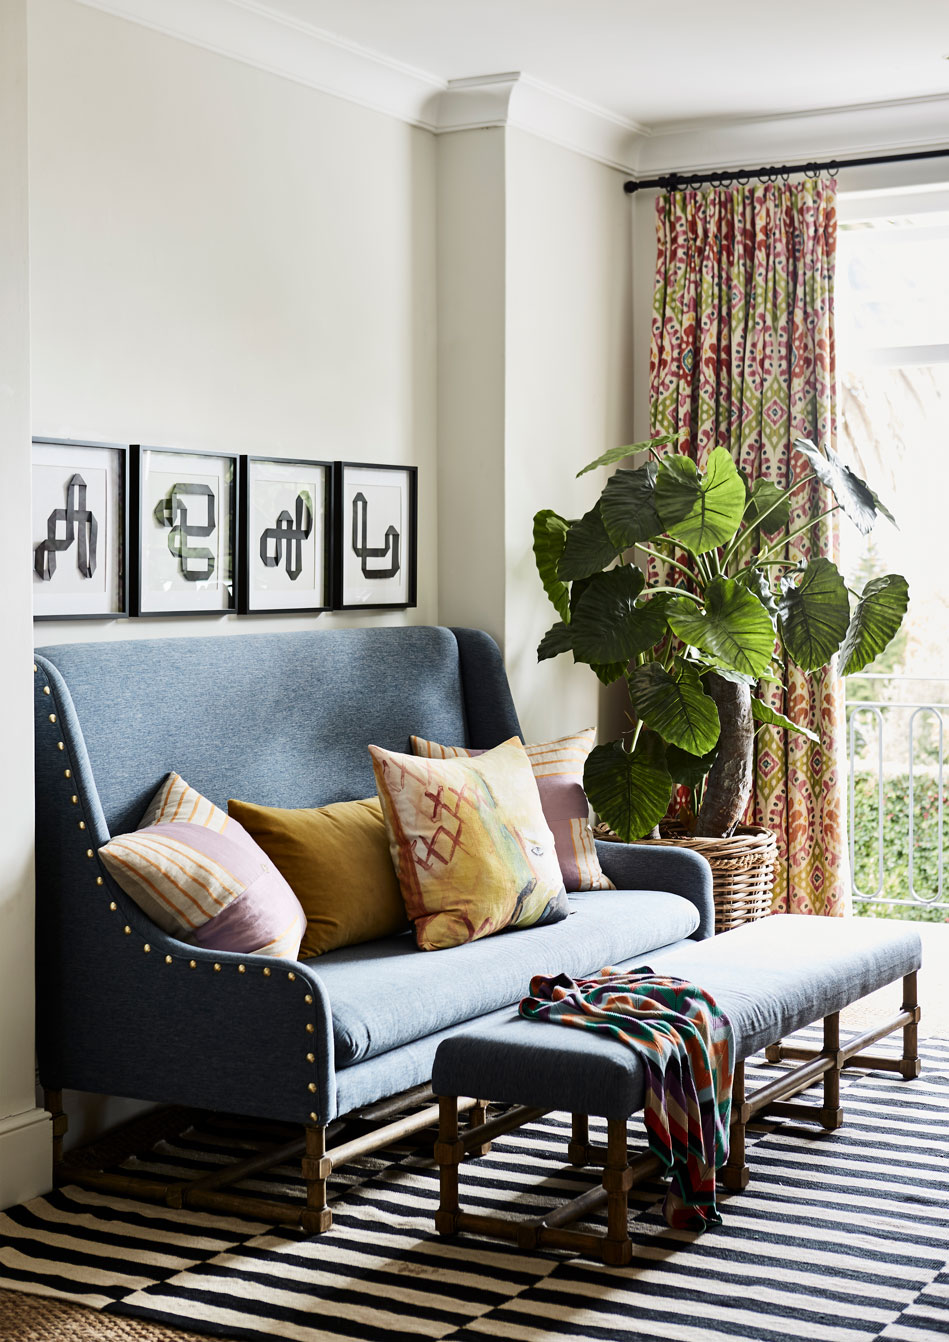 The casual 'pyjama' lounge area at the top of the stairs is furnished with a sky-blue couch and bench from La Grange Interiors. 